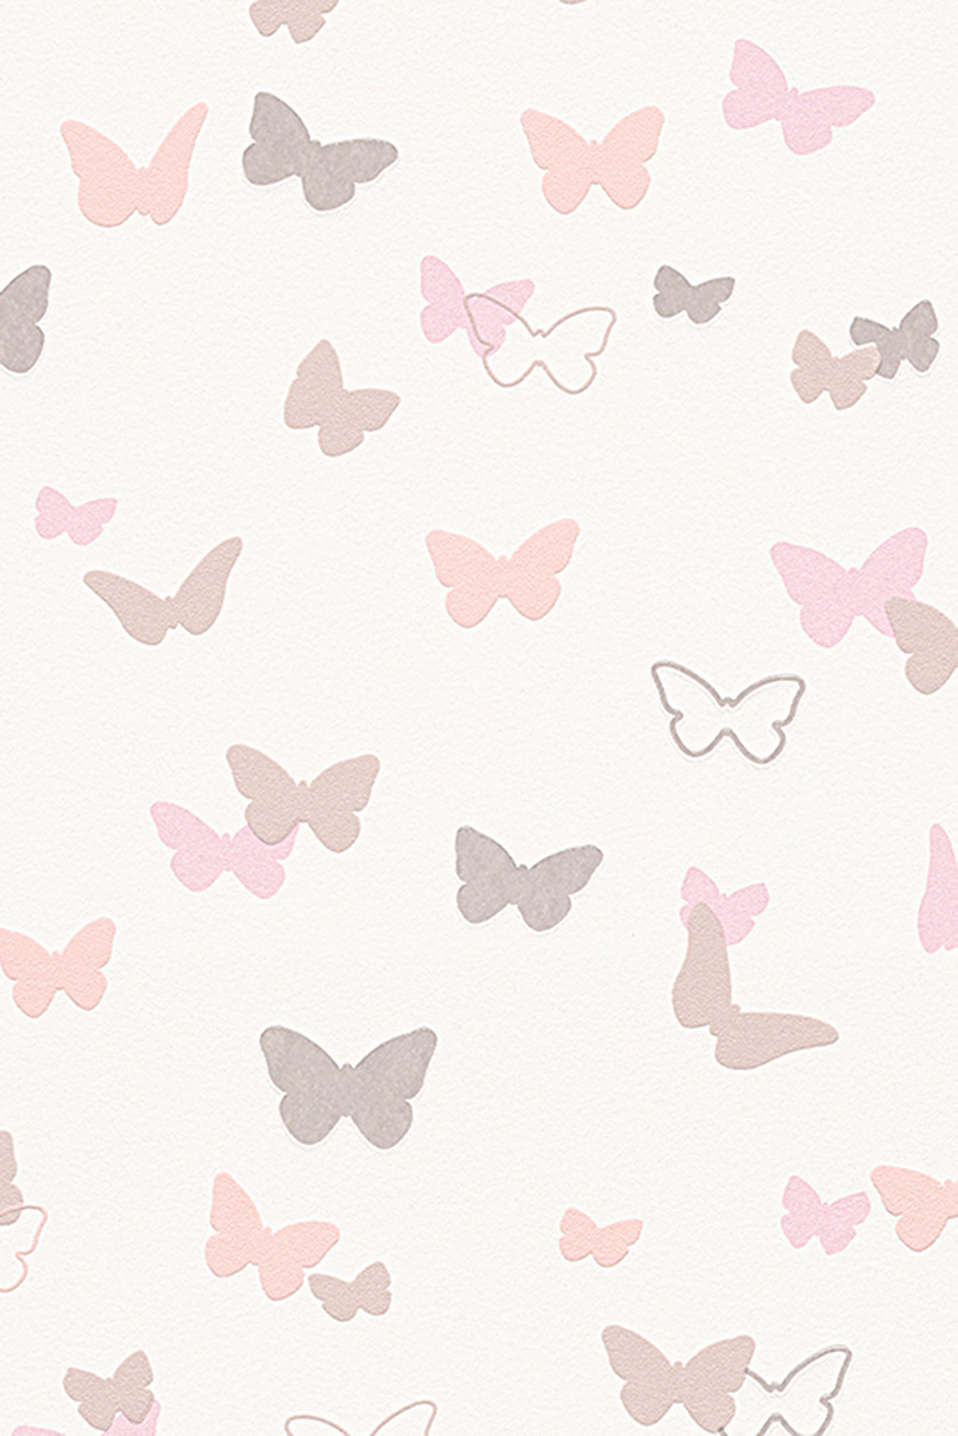 Esprit - Kindertapete Sweet Butterfly Patterned